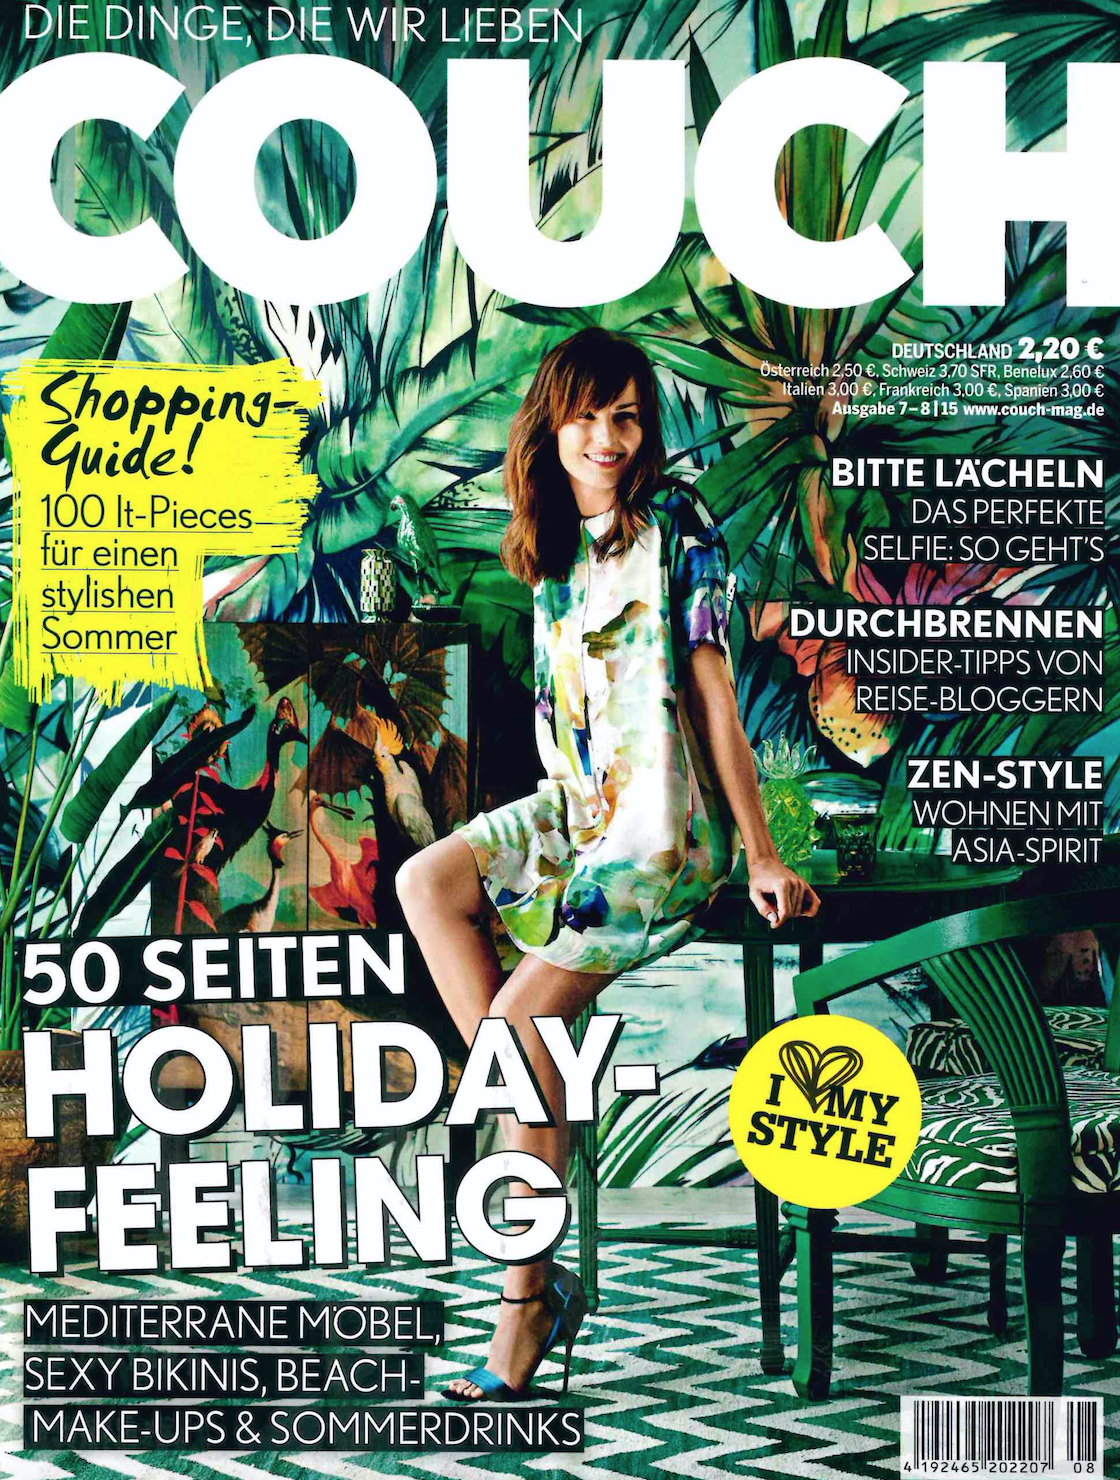 Couch magazine Cover